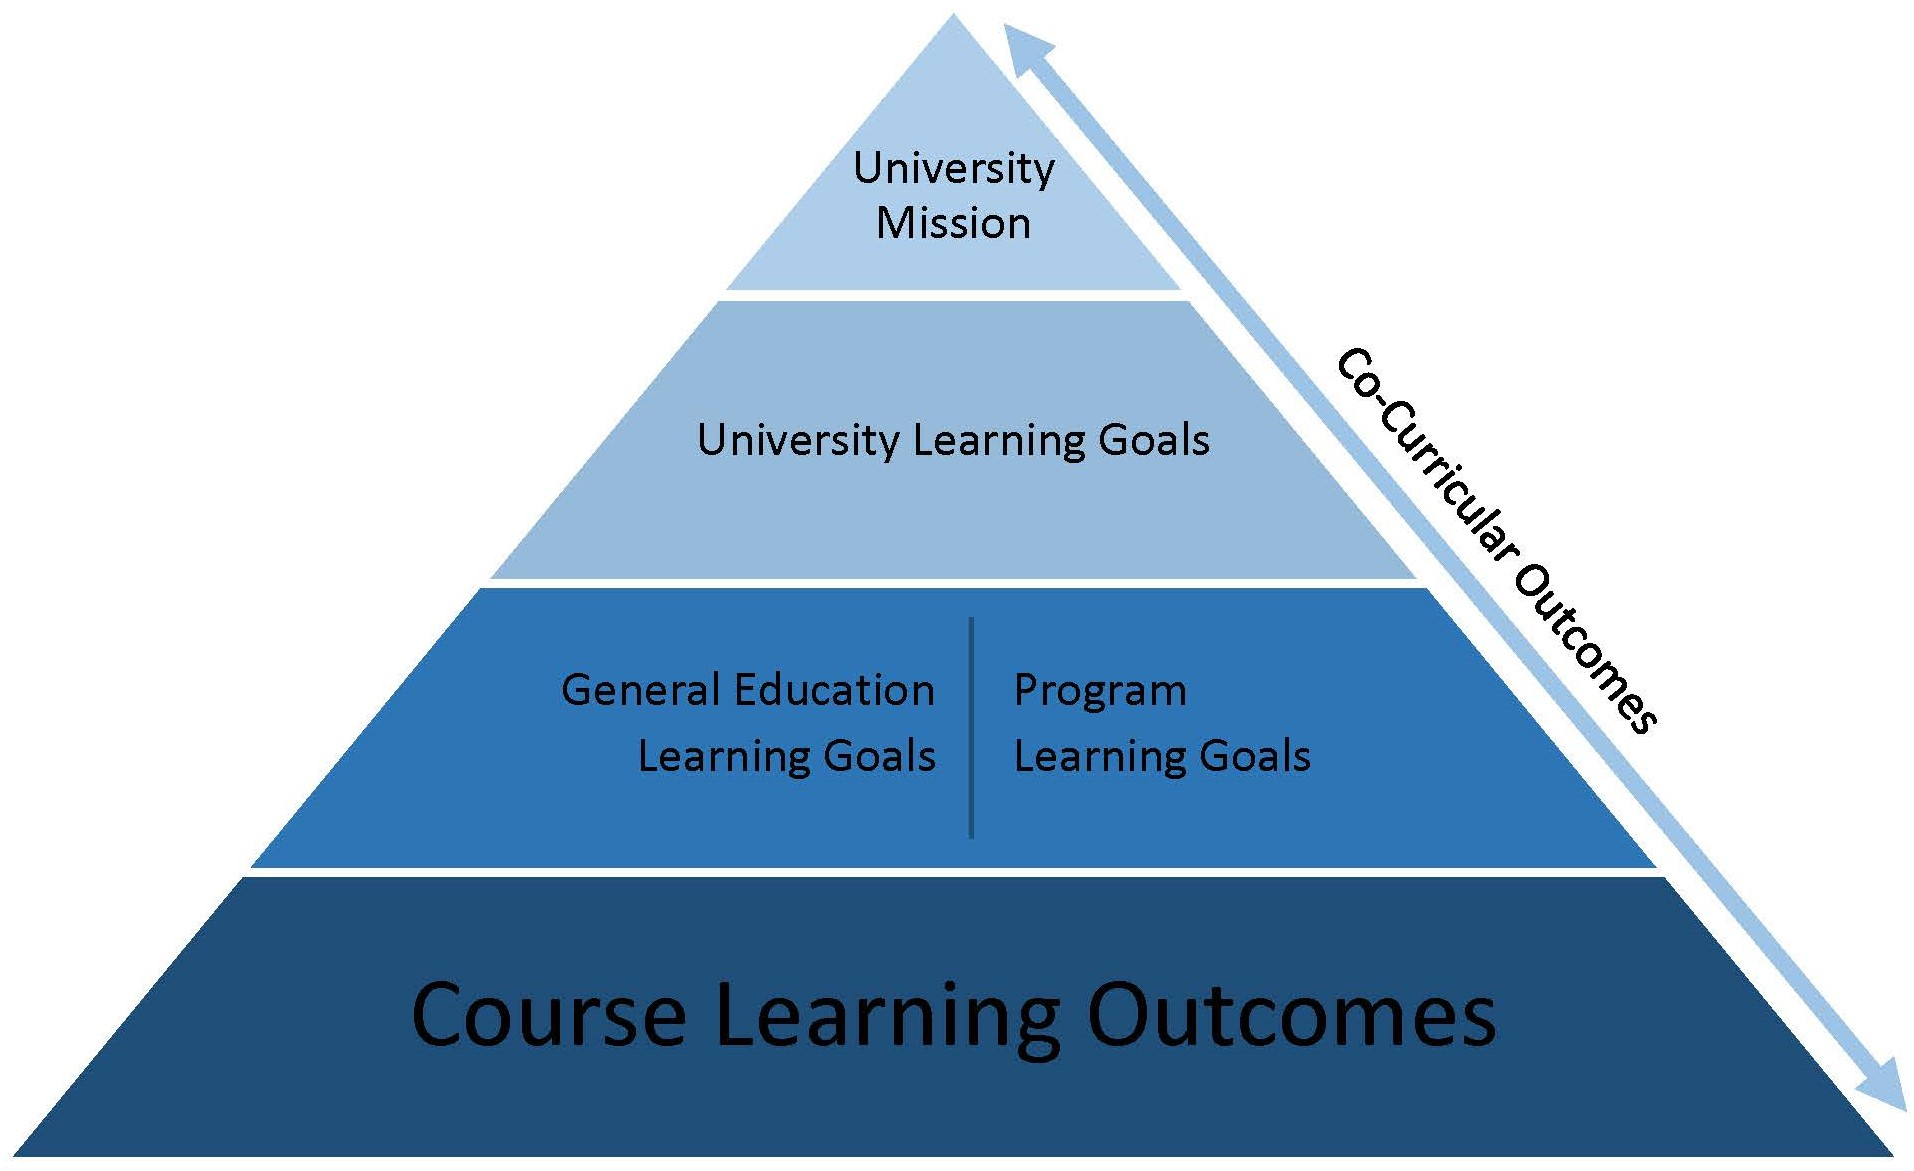 Institutional Pyramid - University Mission at top, Institutional Learning Goals, General Education and Program Learning Outcomes, and Course Learning Outcomes at bottom